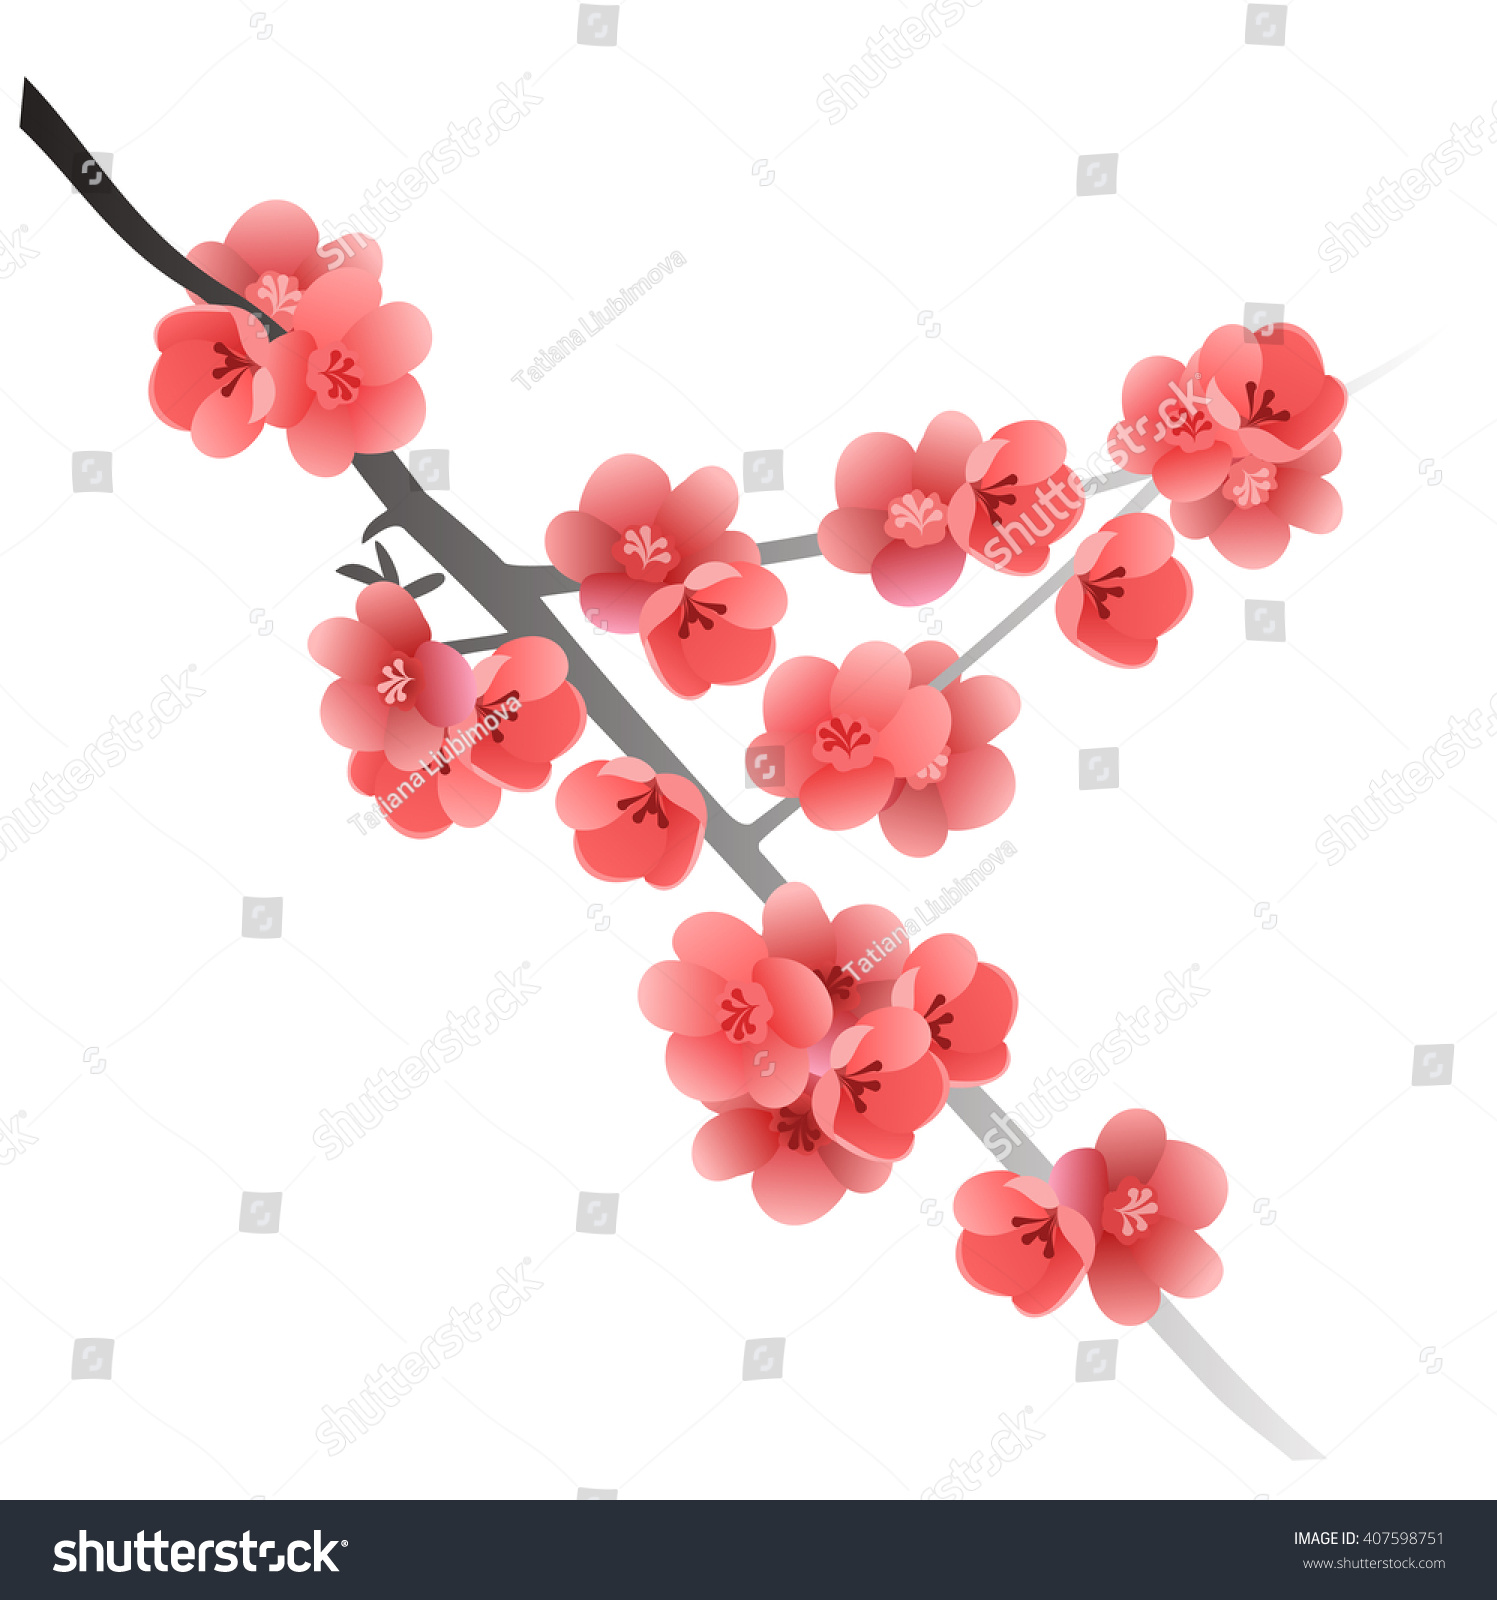 Flowering quince branch chaenomeles japonica hand stock vector flowering quince branch chaenomeles japonica hand drawn vector illustration of japanese quince flowers biocorpaavc Image collections